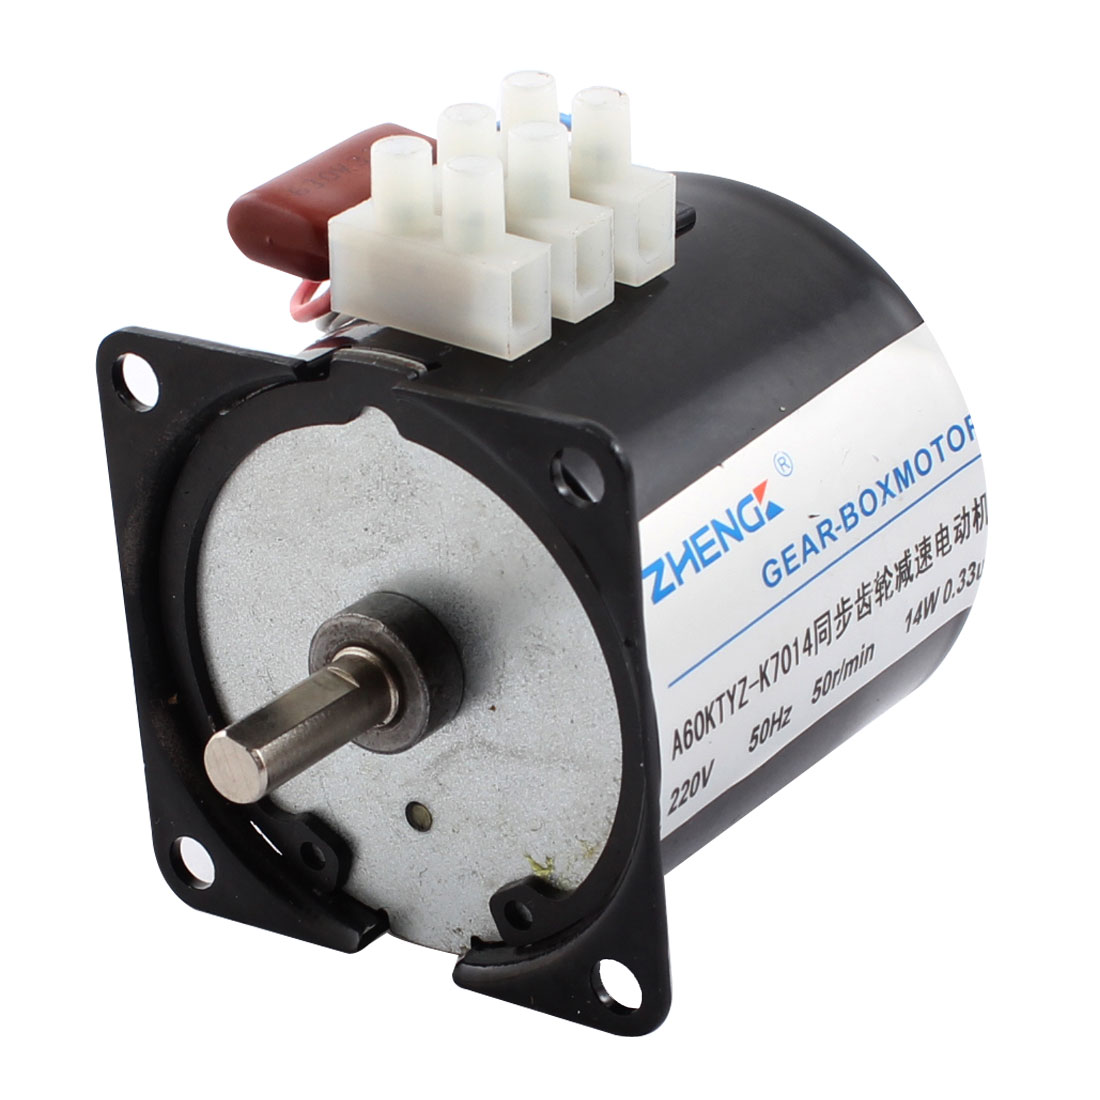 AC220V 50R/MIN 7mm Shaft 3 Position Terminal Electrical Synchronous Reducer Gear Motor Black